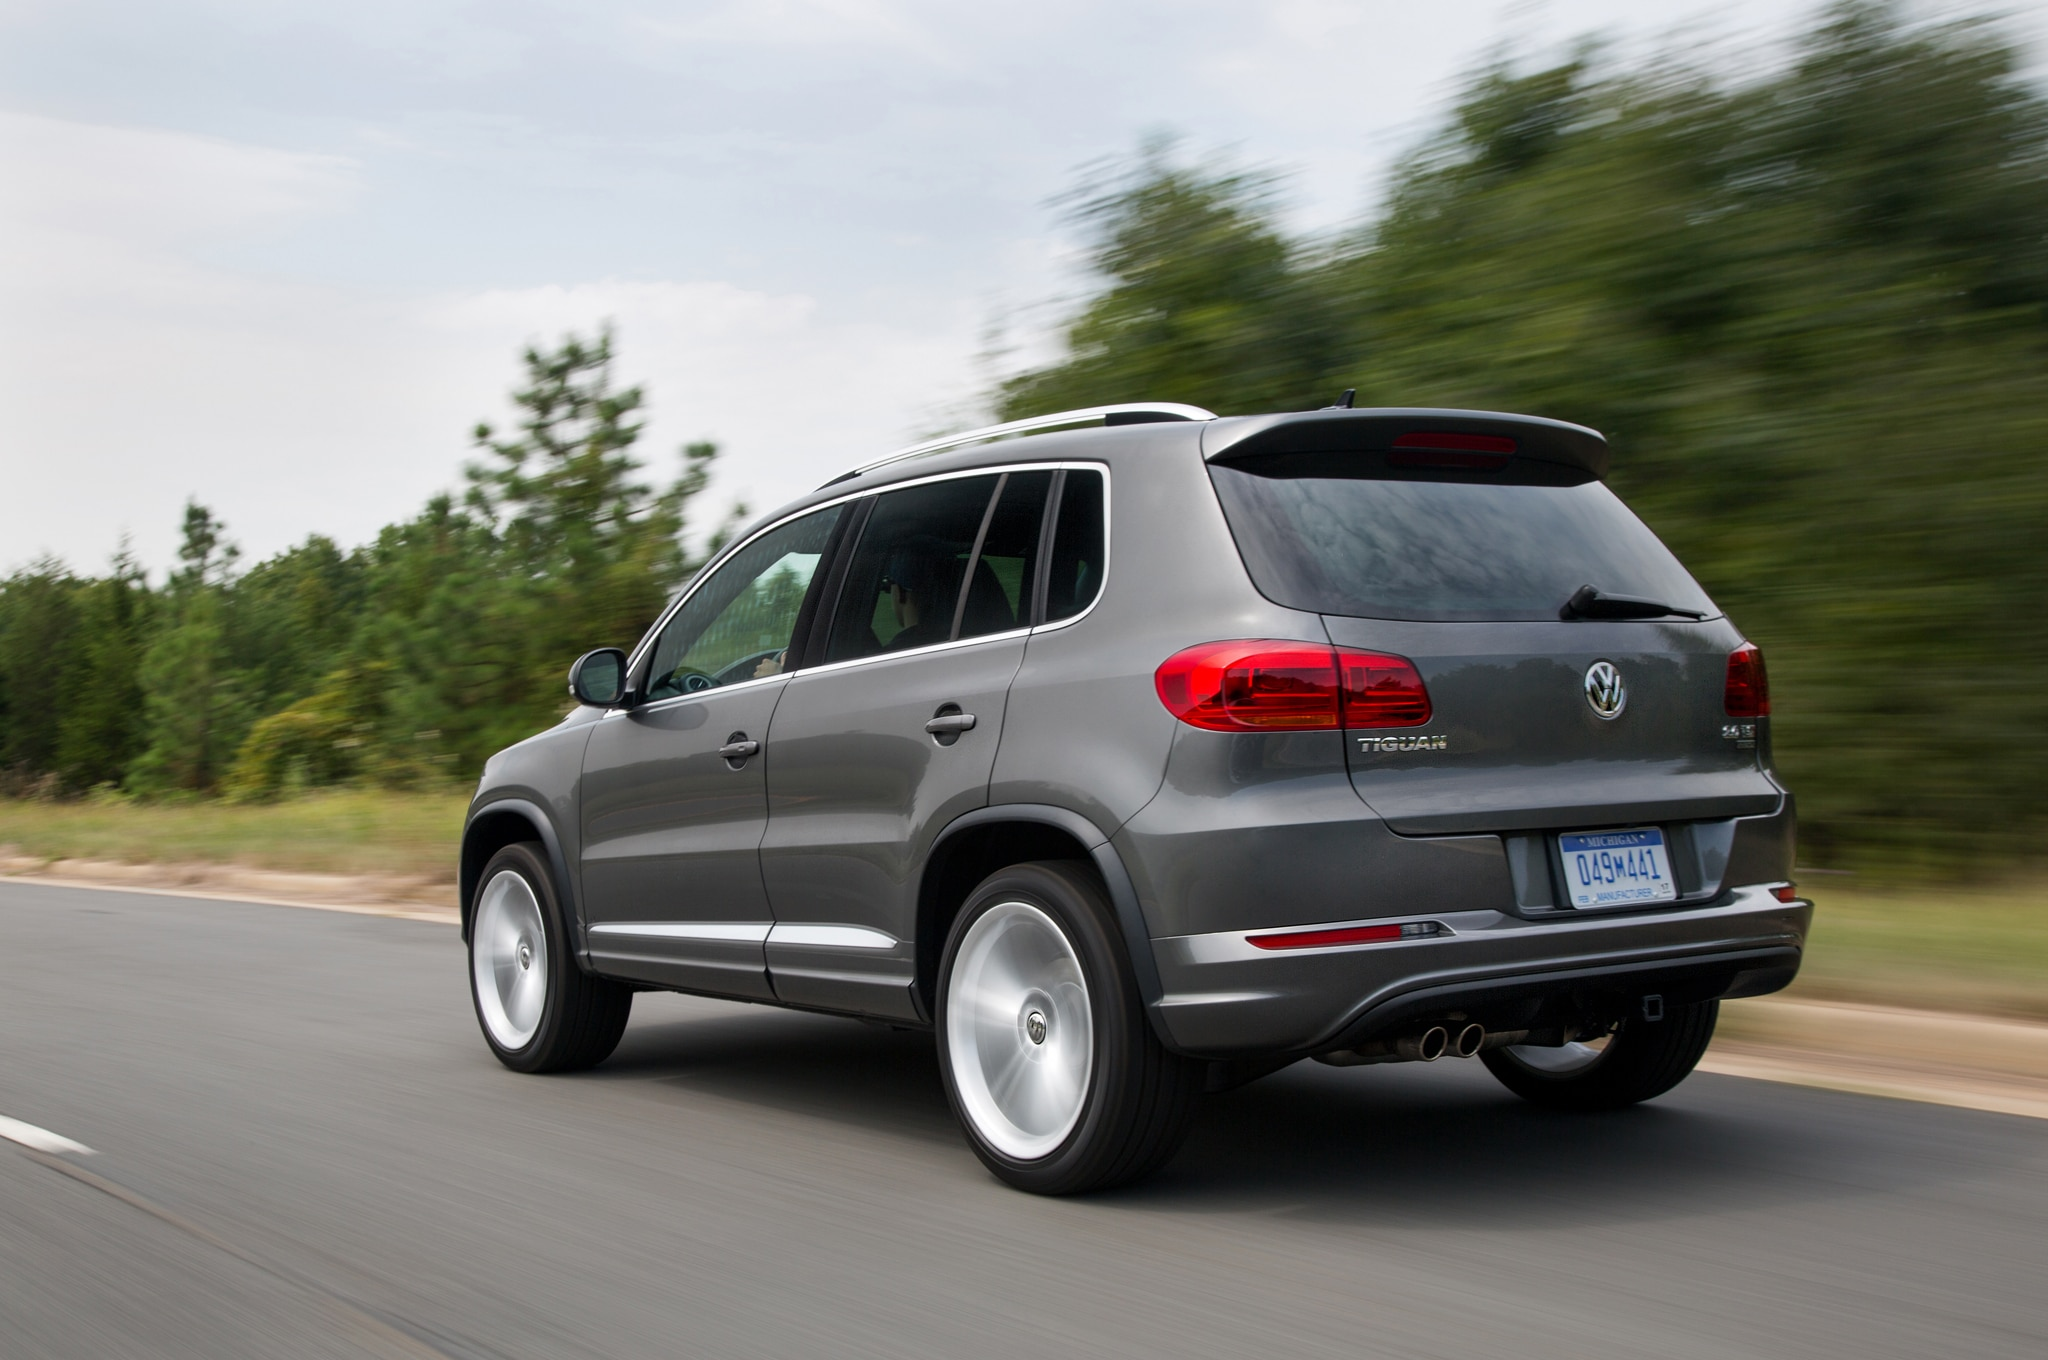 2016 volkswagen tiguan touareg prices reduced. Black Bedroom Furniture Sets. Home Design Ideas